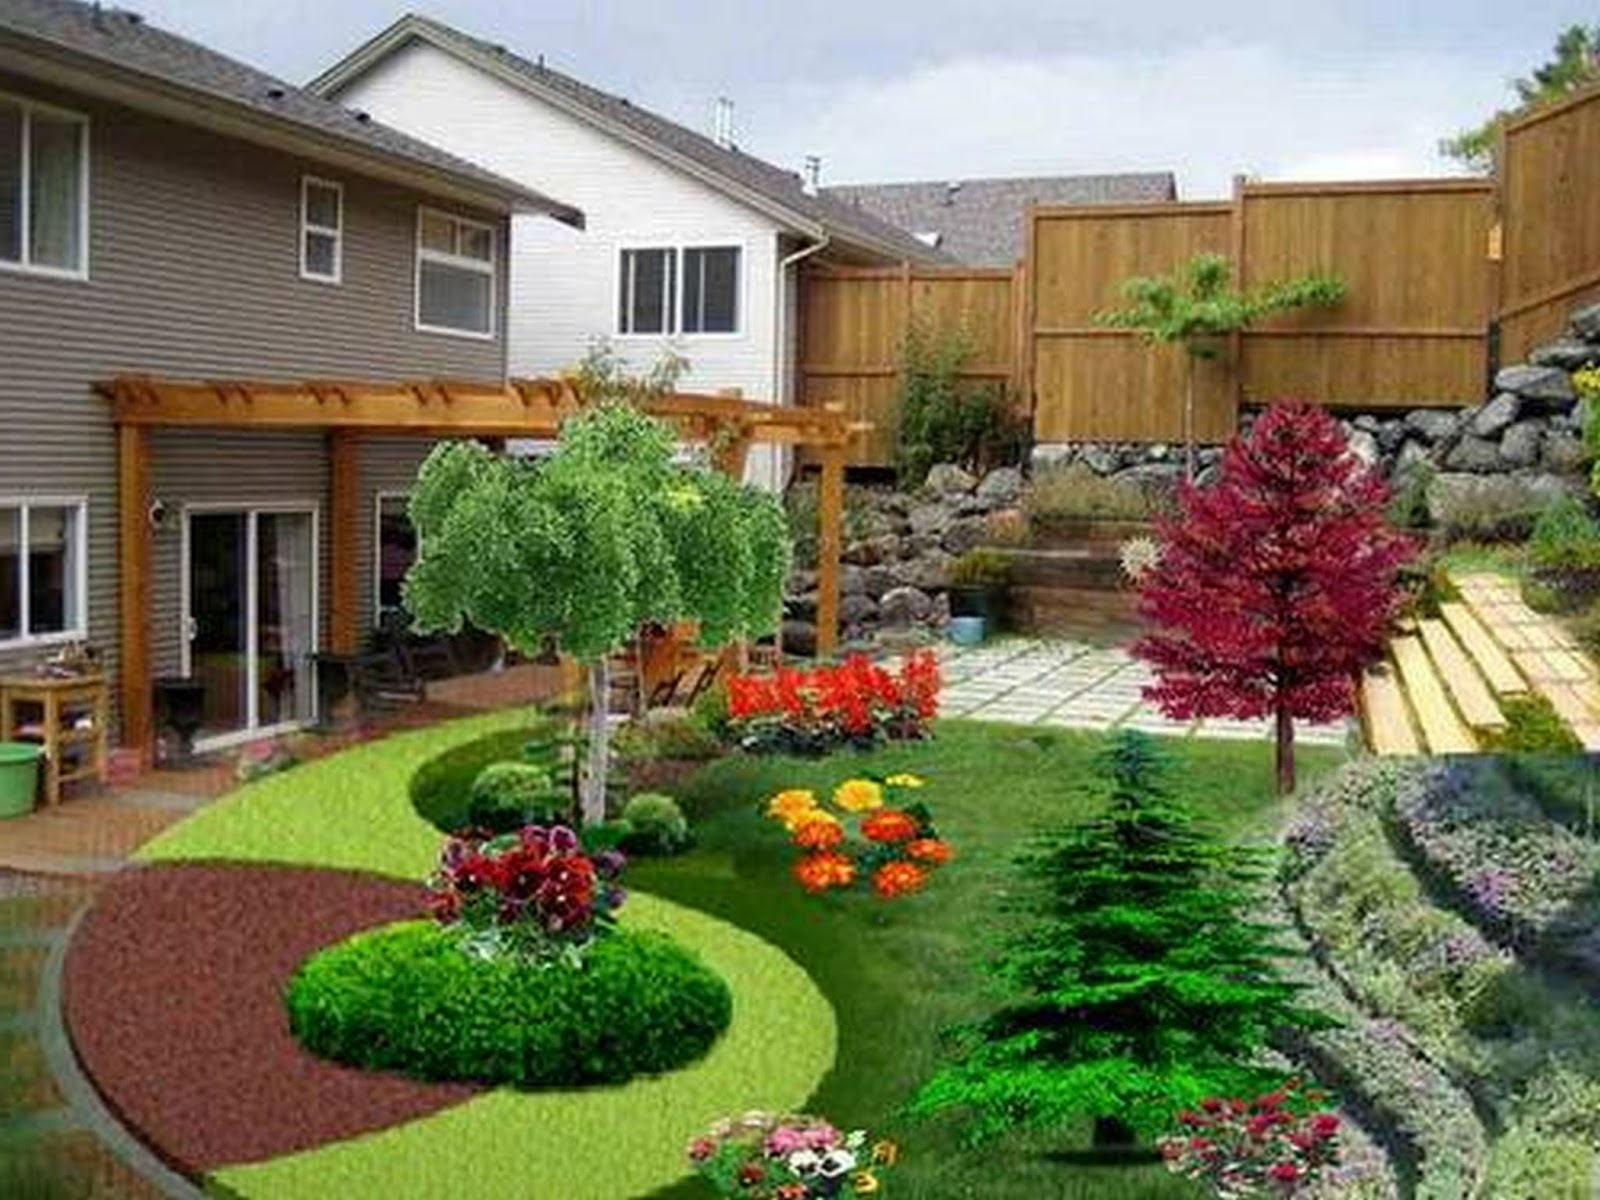 20 Creative Ideas To Improve The Backyard Of Your Home